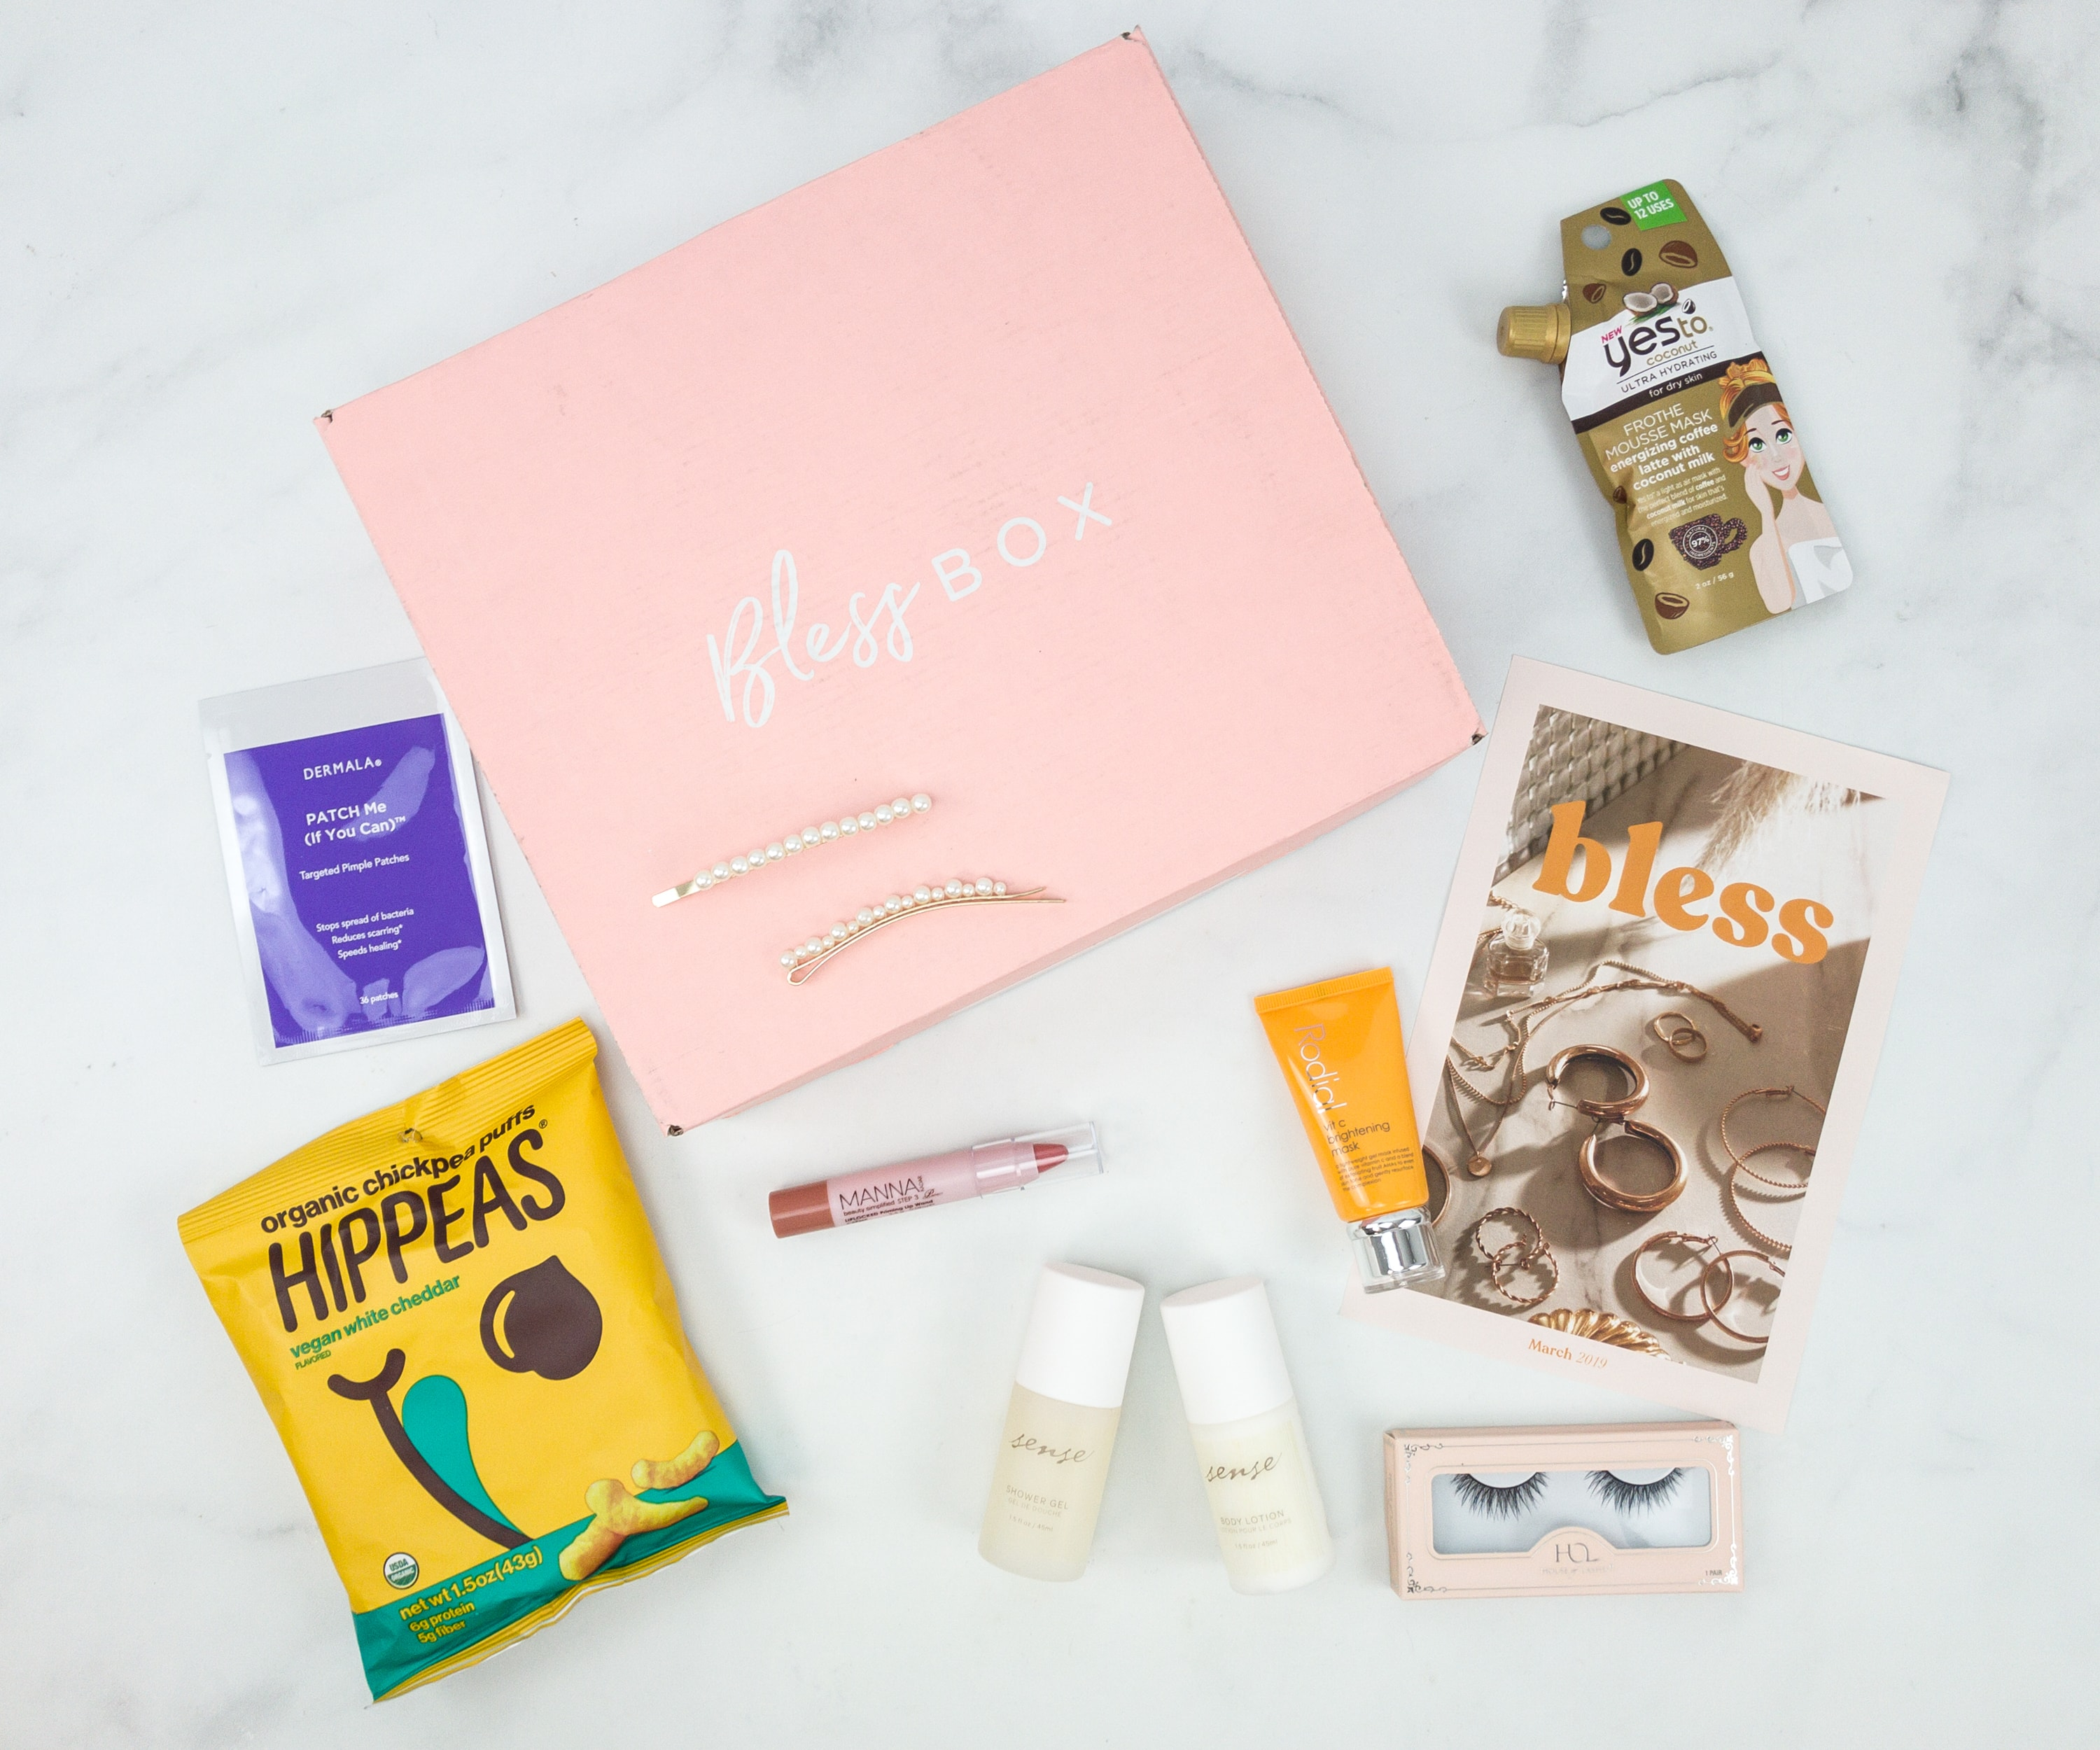 Bless Box March 2019 Subscription Box Review & Coupon